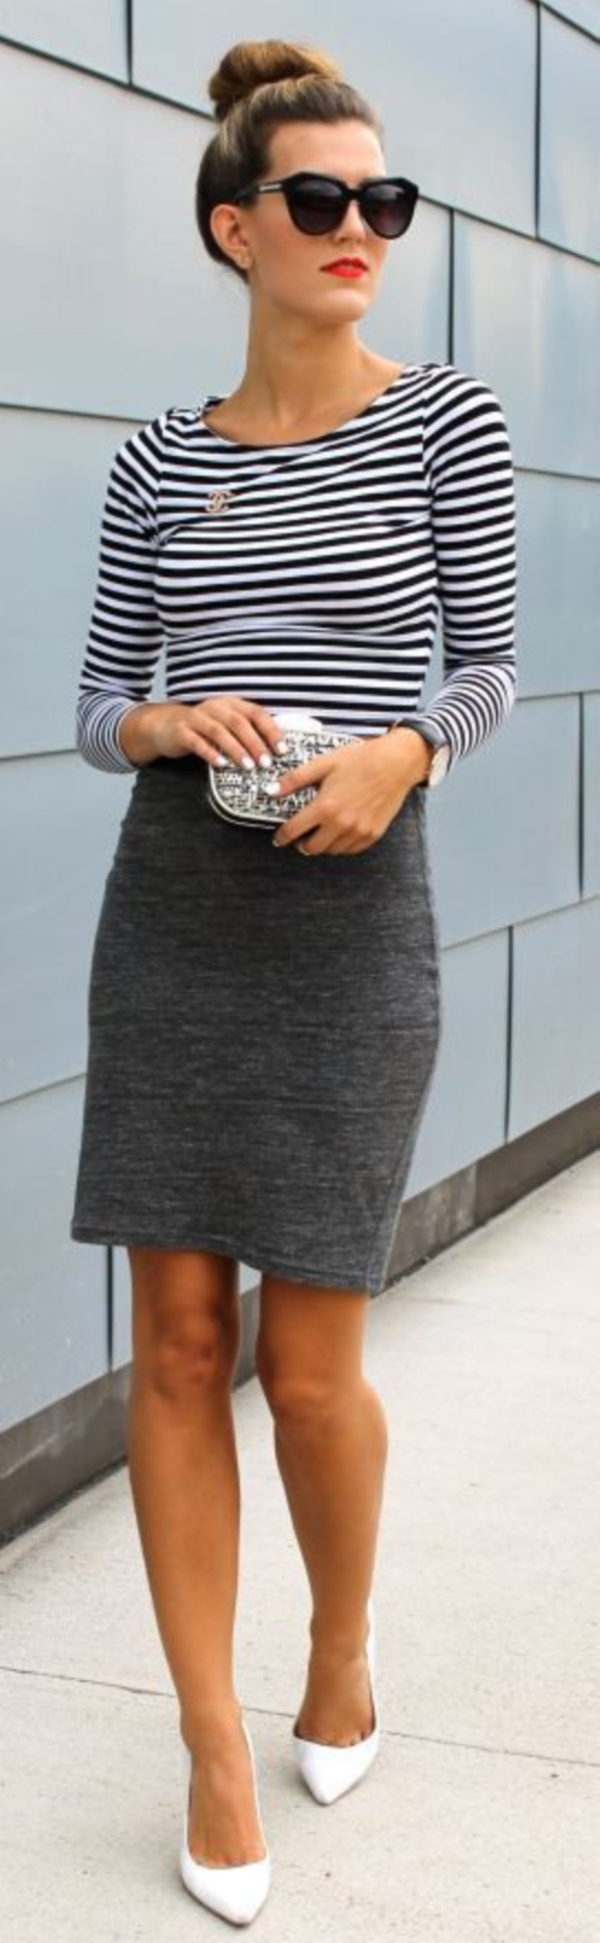 grey skirt outfit (80)